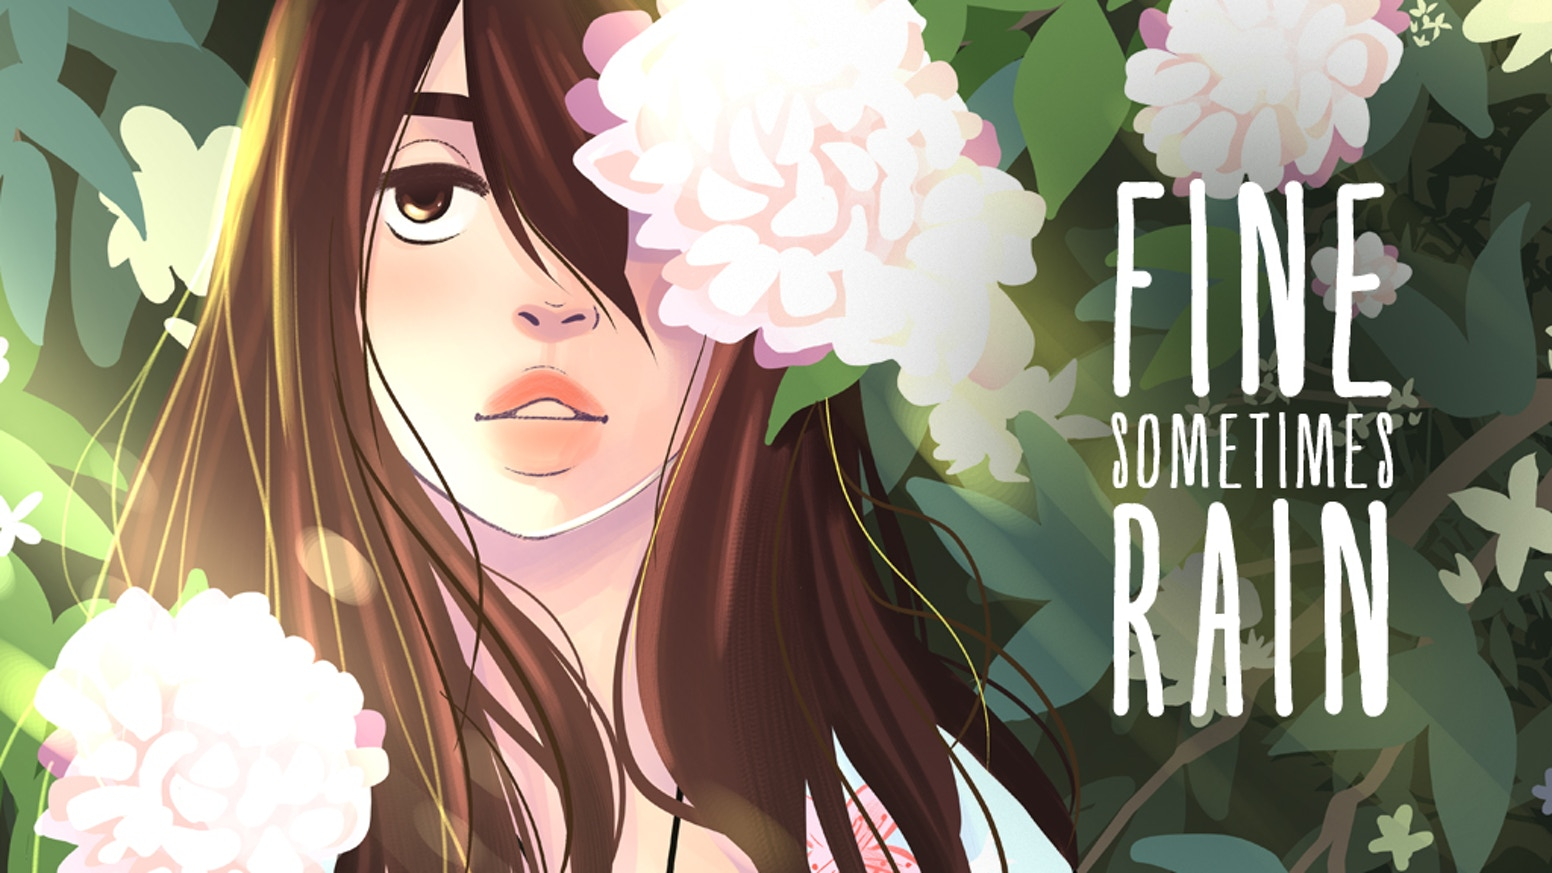 Fine Sometimes Rain is a slice of life webcomic about overcoming depression.